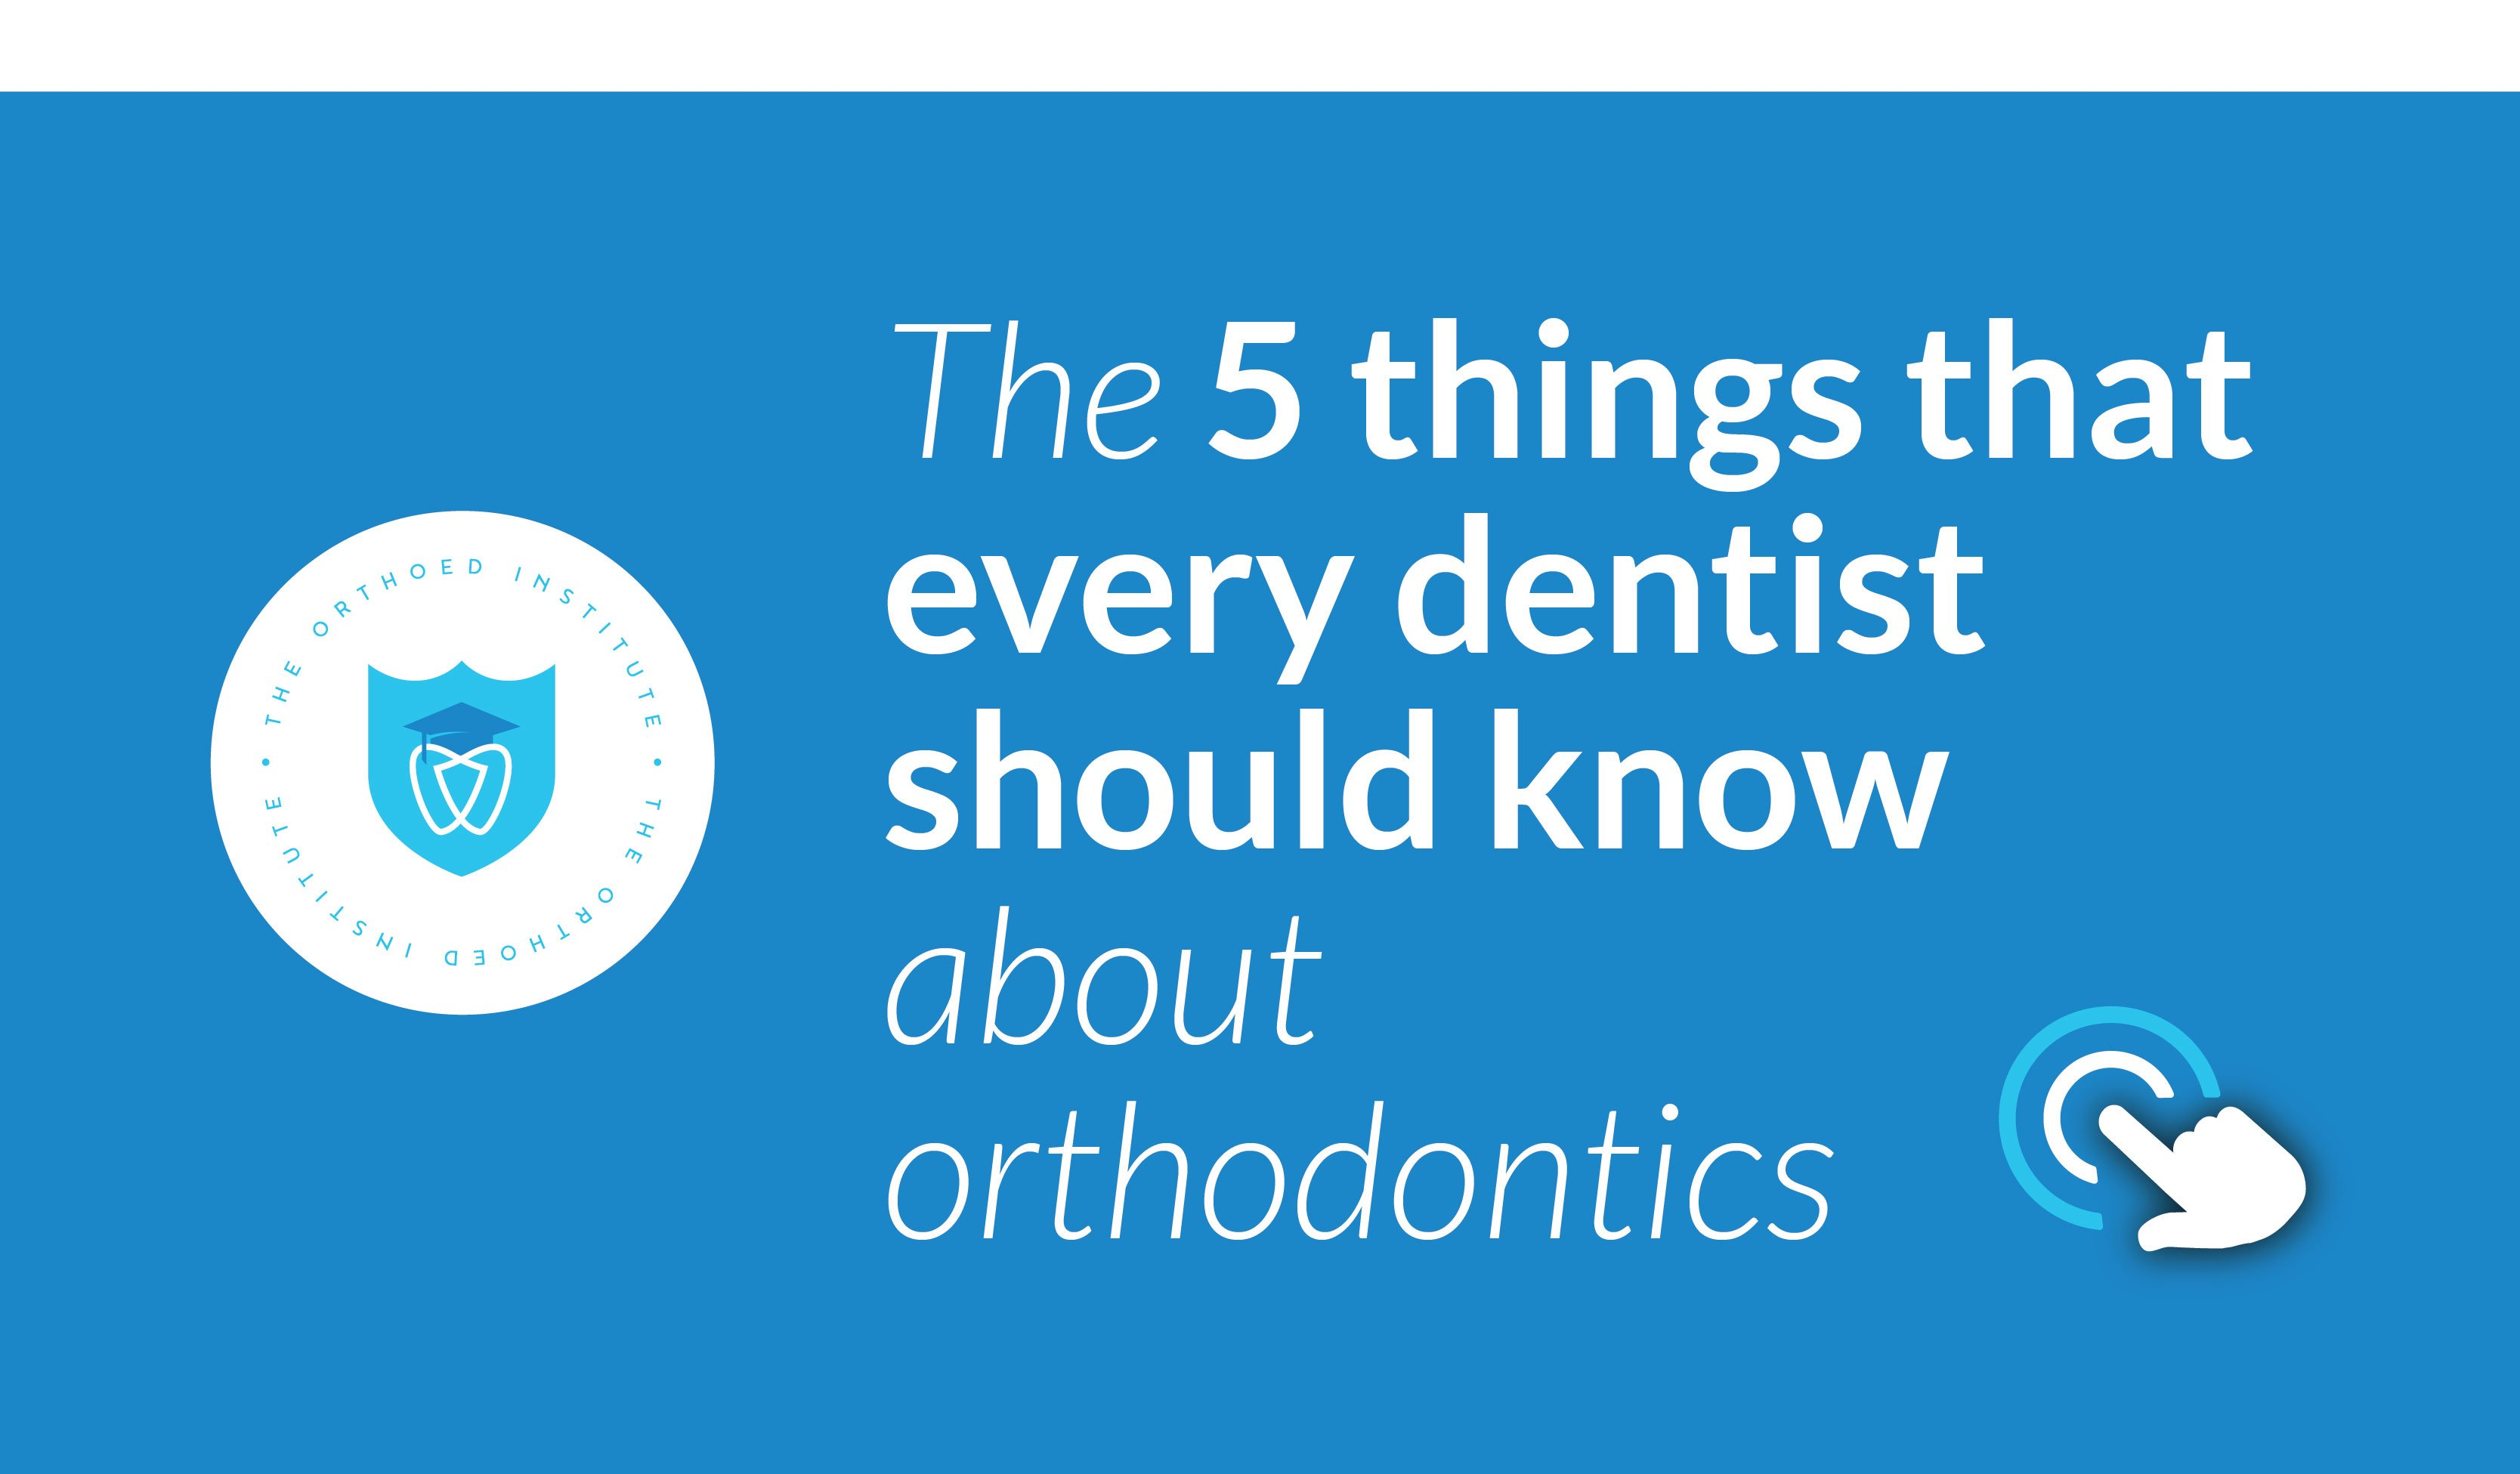 Every dentist should know about orthodontics